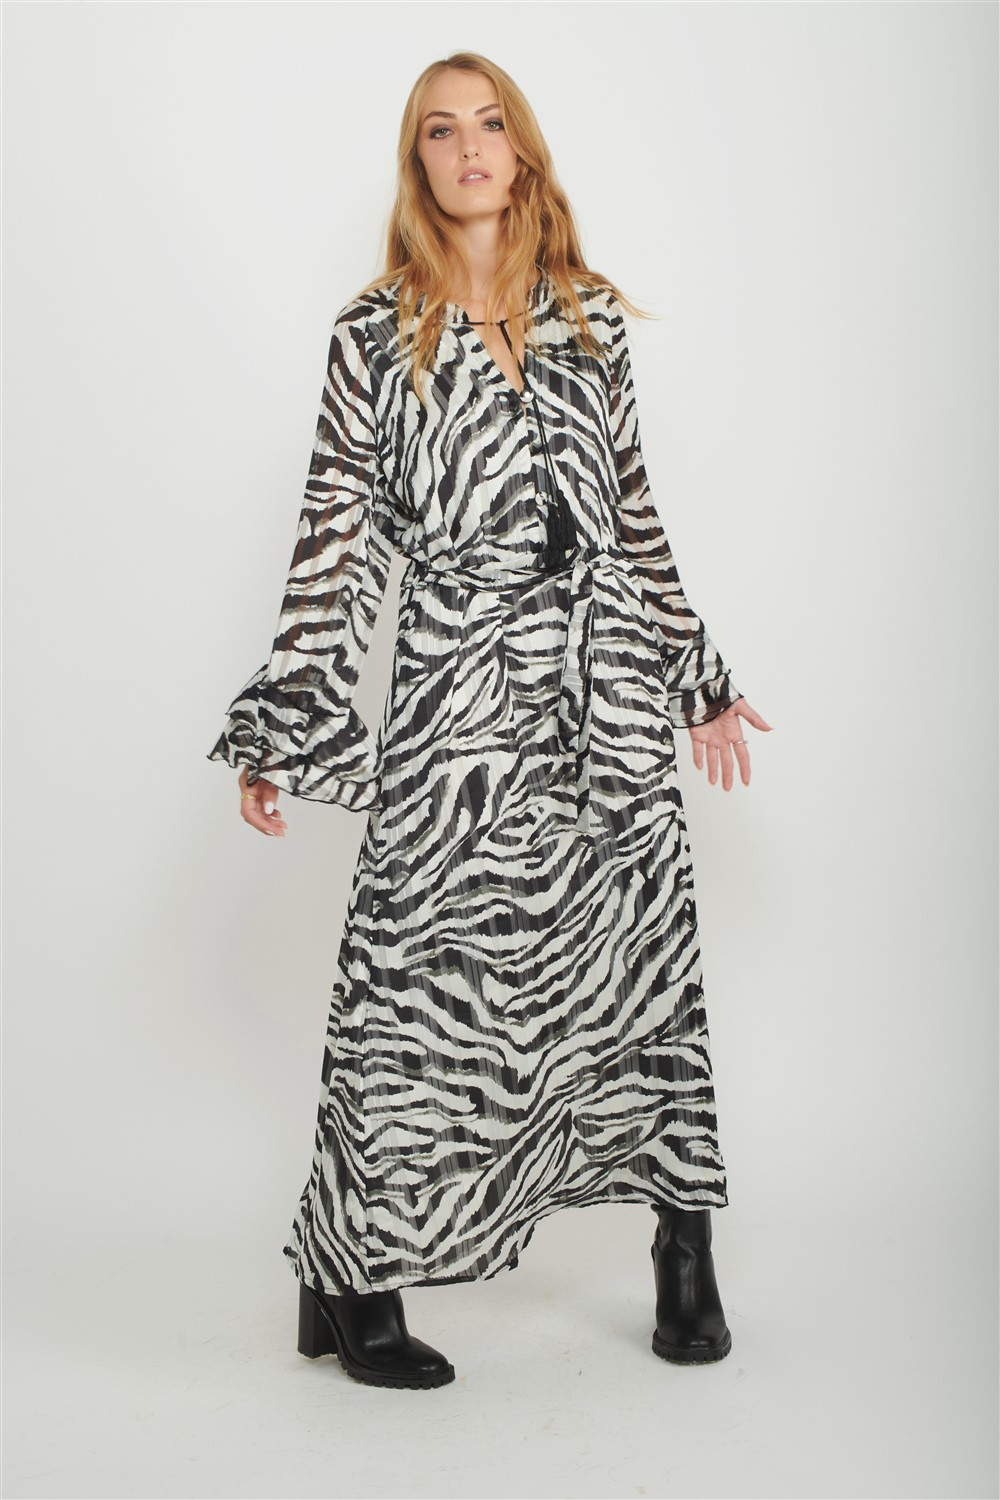 zoo dress women